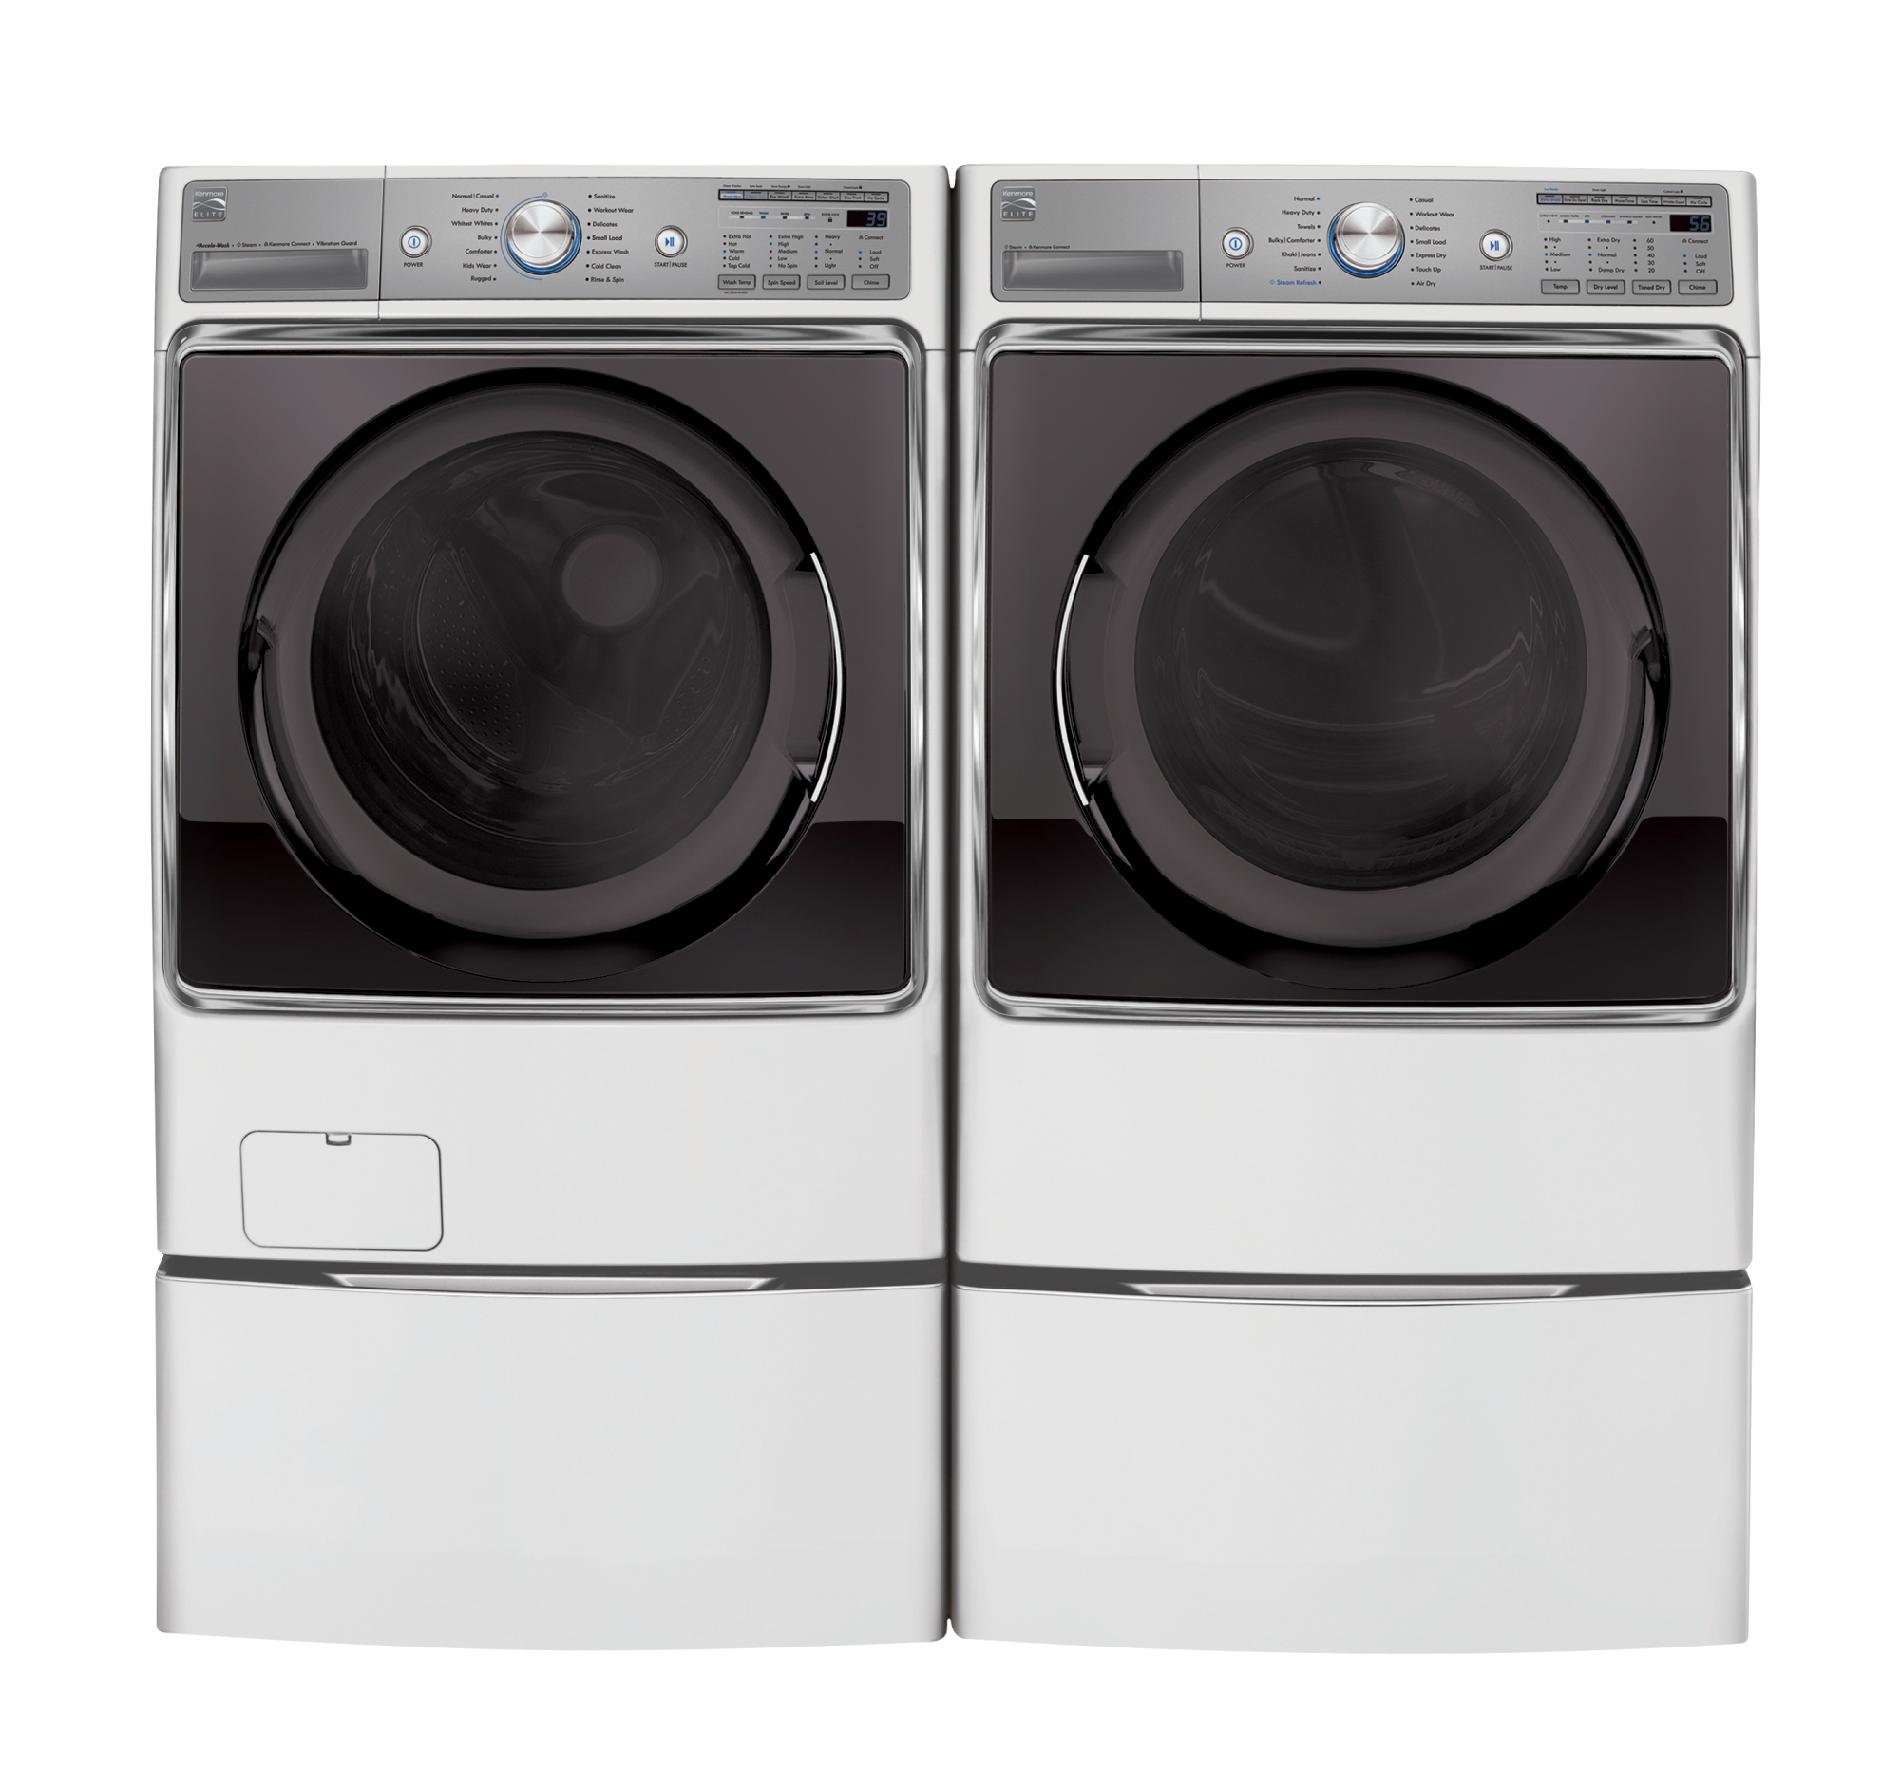 Kenmore Elite 5.2 cu. ft. Front-Load Washer - White